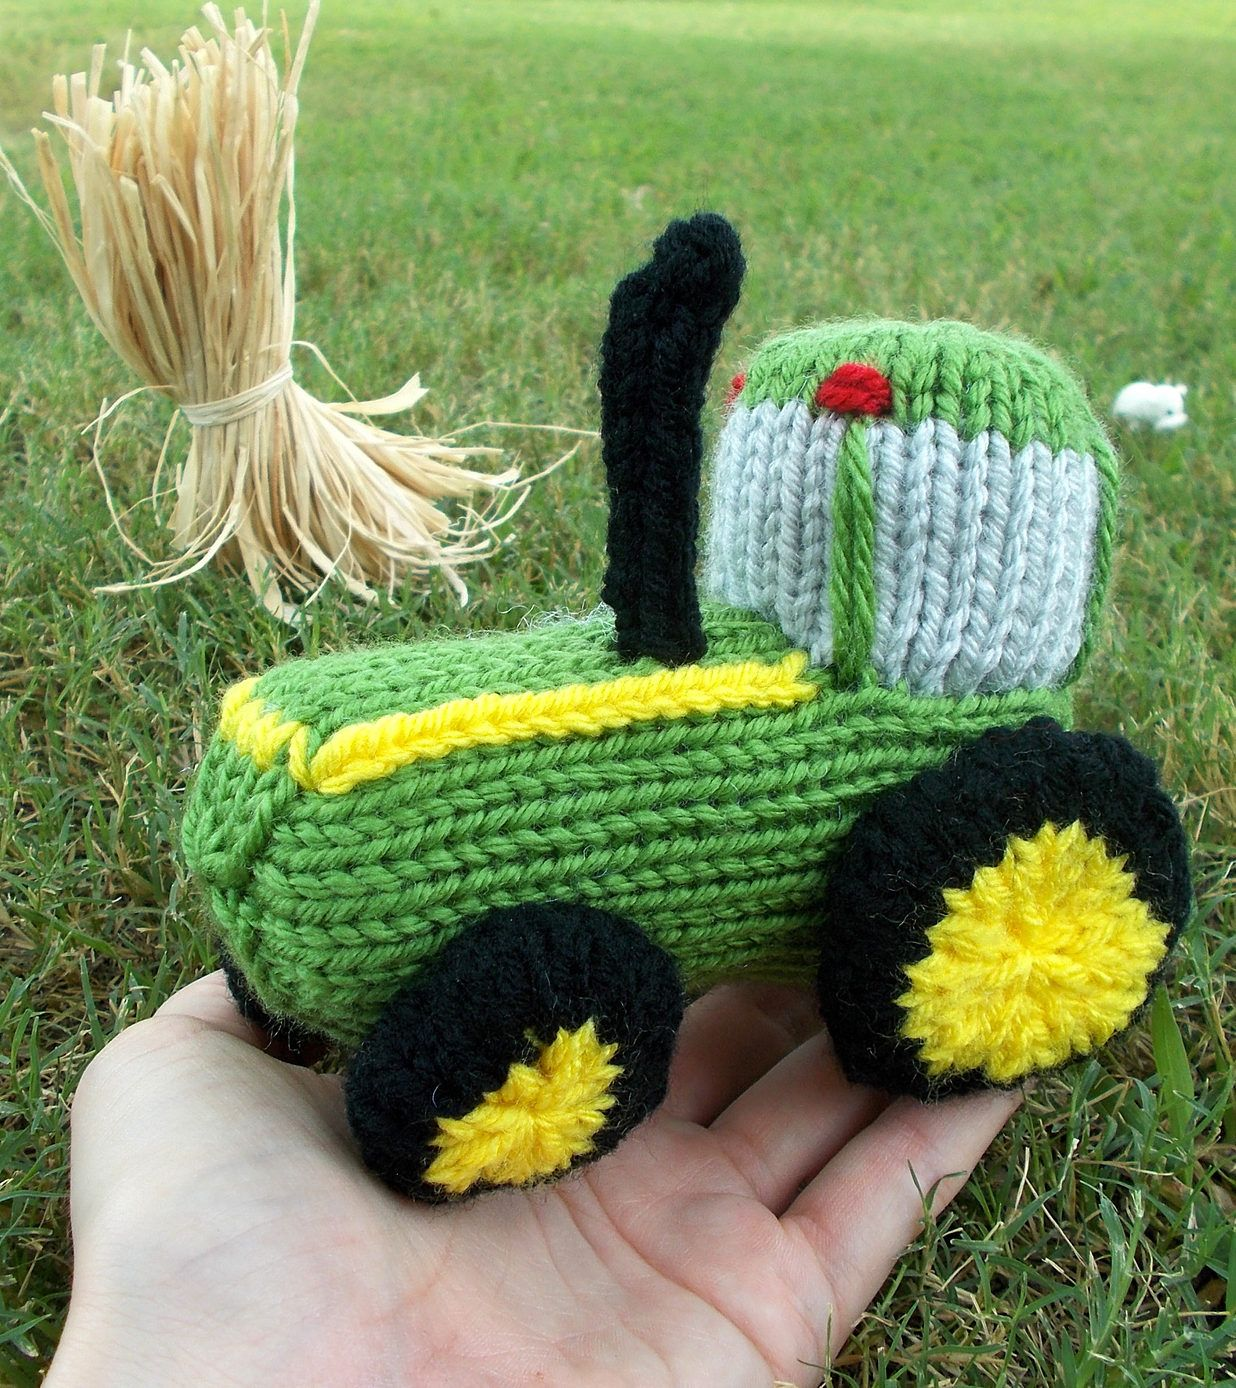 Free Knitting Pattern for Tractor Toy - When knitted with worsted ...